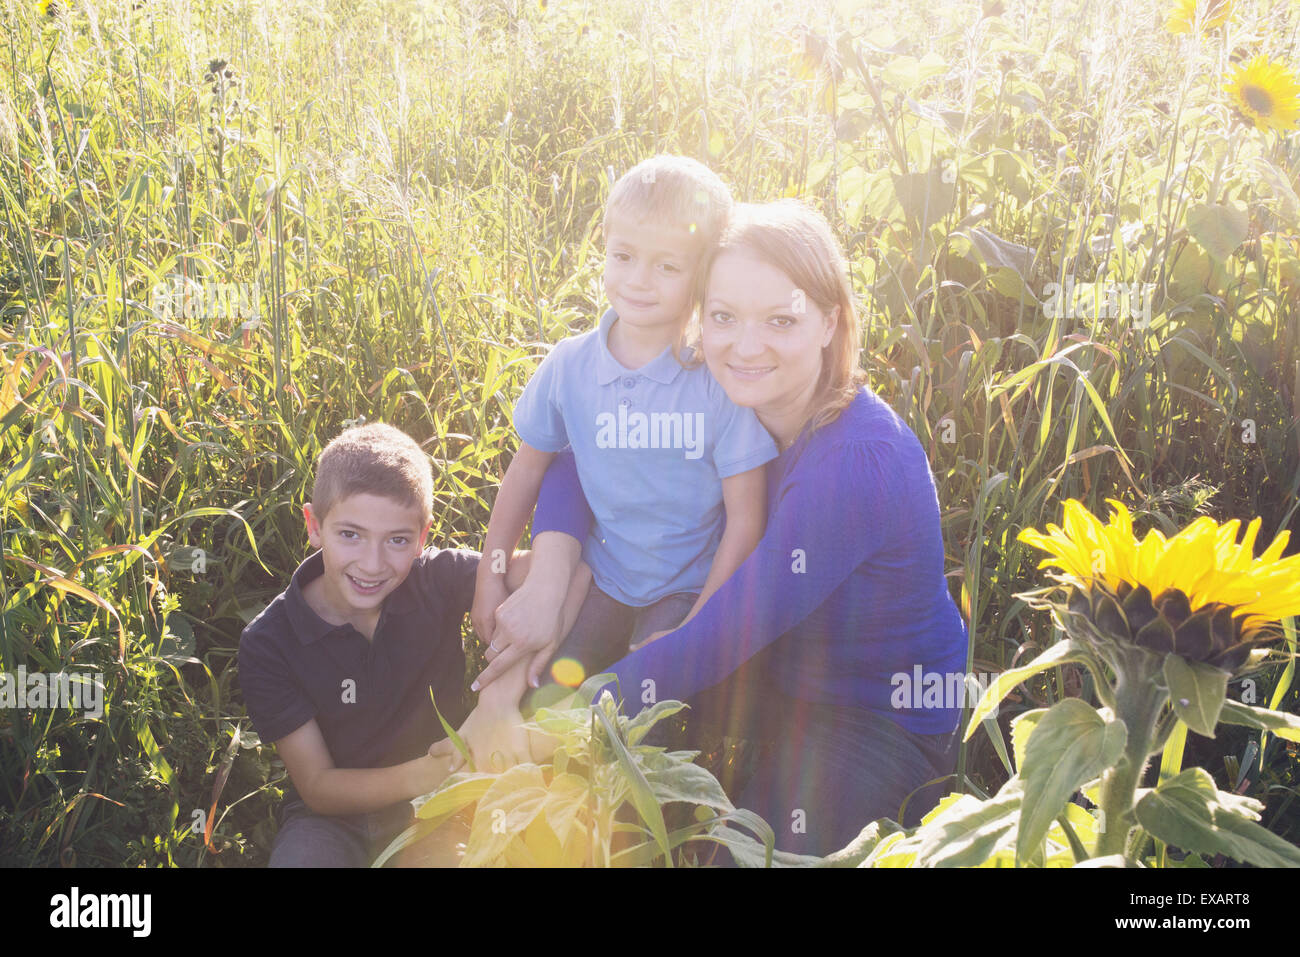 Mother and young sons together in field of sunflowers, portrait - Stock Image